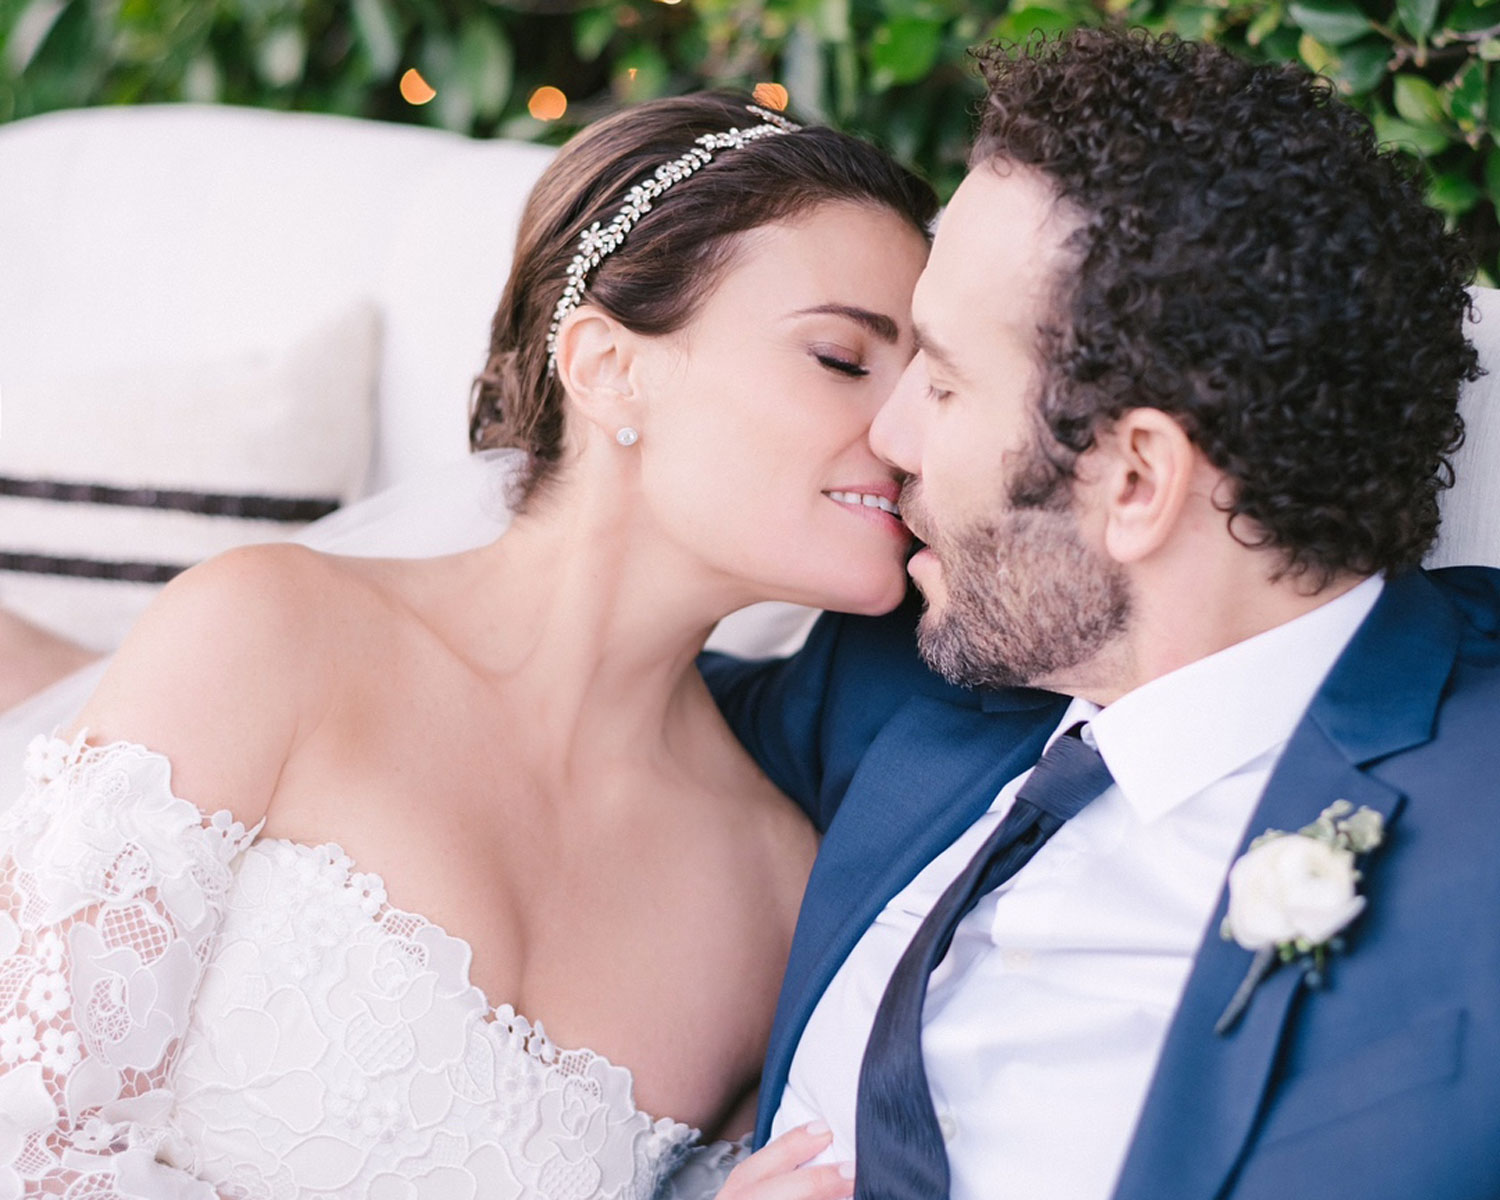 Idina Menzel Shares Photos From Her Wedding To Aaron Lohr